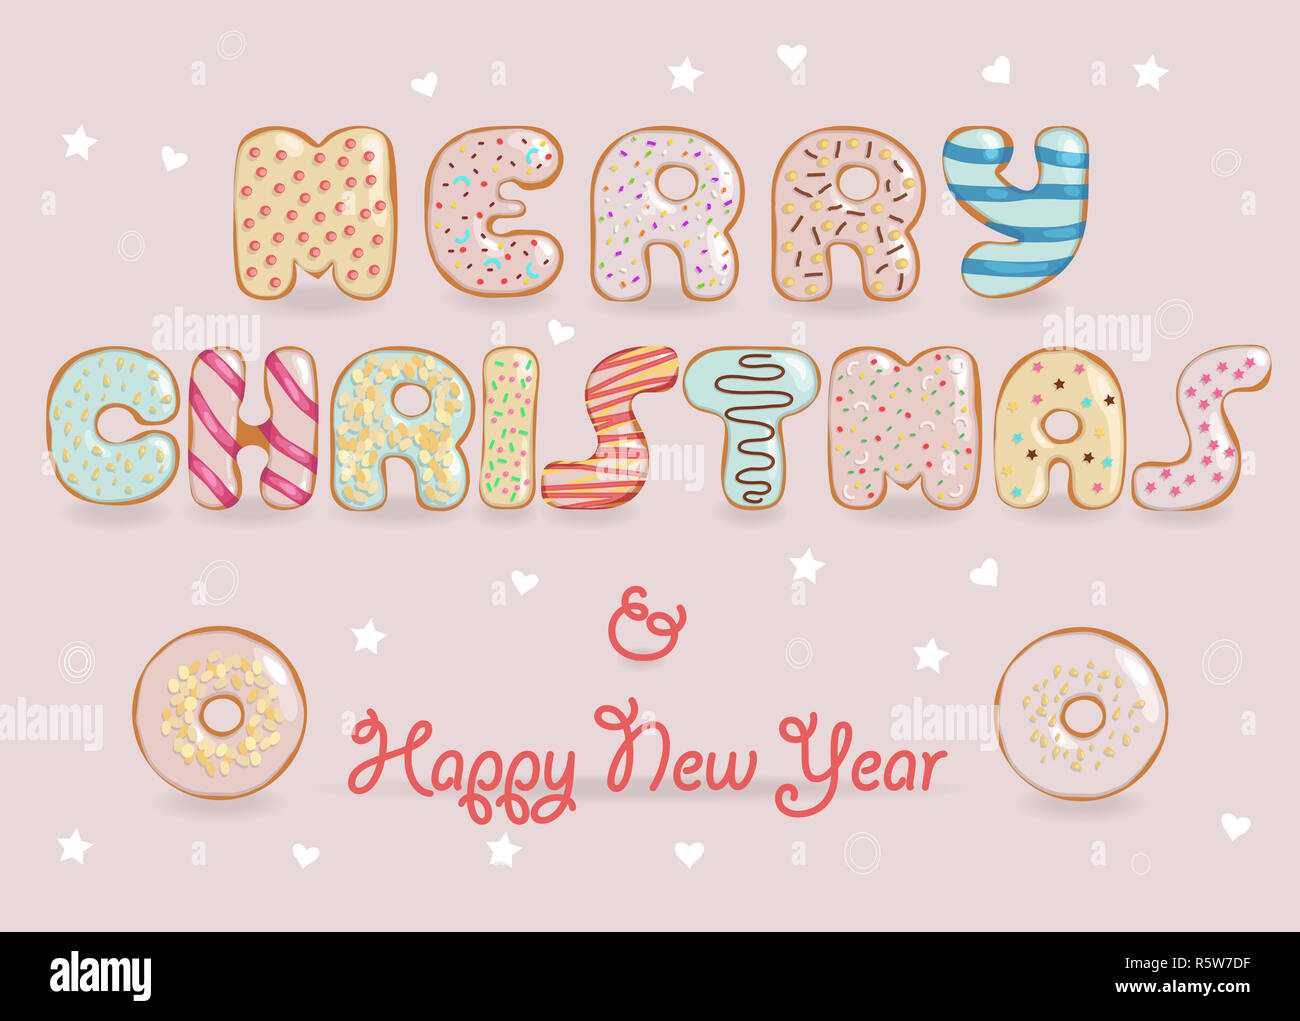 festive inscription with white chocolate donuts letters merry christmas happy new year unusual sweet artistic font vector illustration